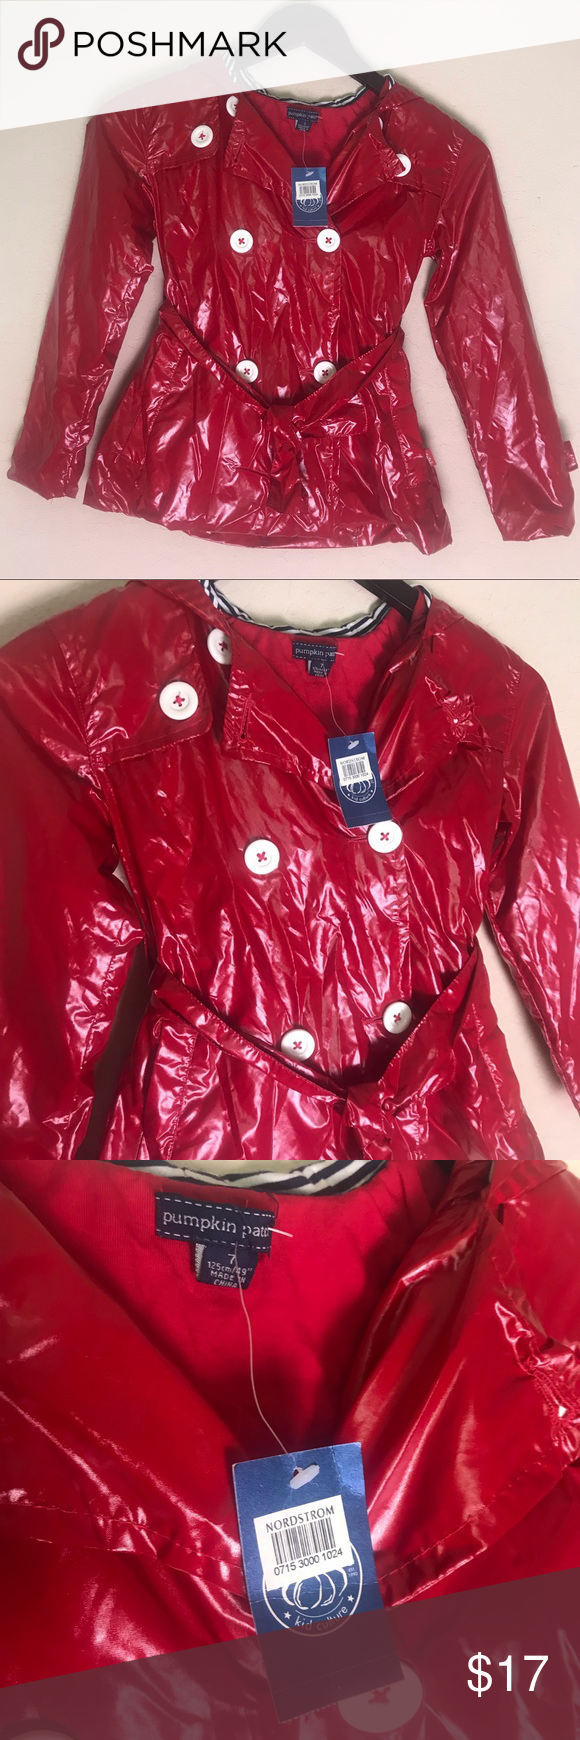 Nordstrom pumpkin patch red raincoat jacket size 7 Nordstrom pumpkin patch red raincoat jacket size 7 Little girls rain jacket  Lined and hooded Extra button inside  Great quality item New with tags ????  My daughter never got to wear it pumpkin patch Jackets & Coats Raincoats #pumpkinpatchoutfit